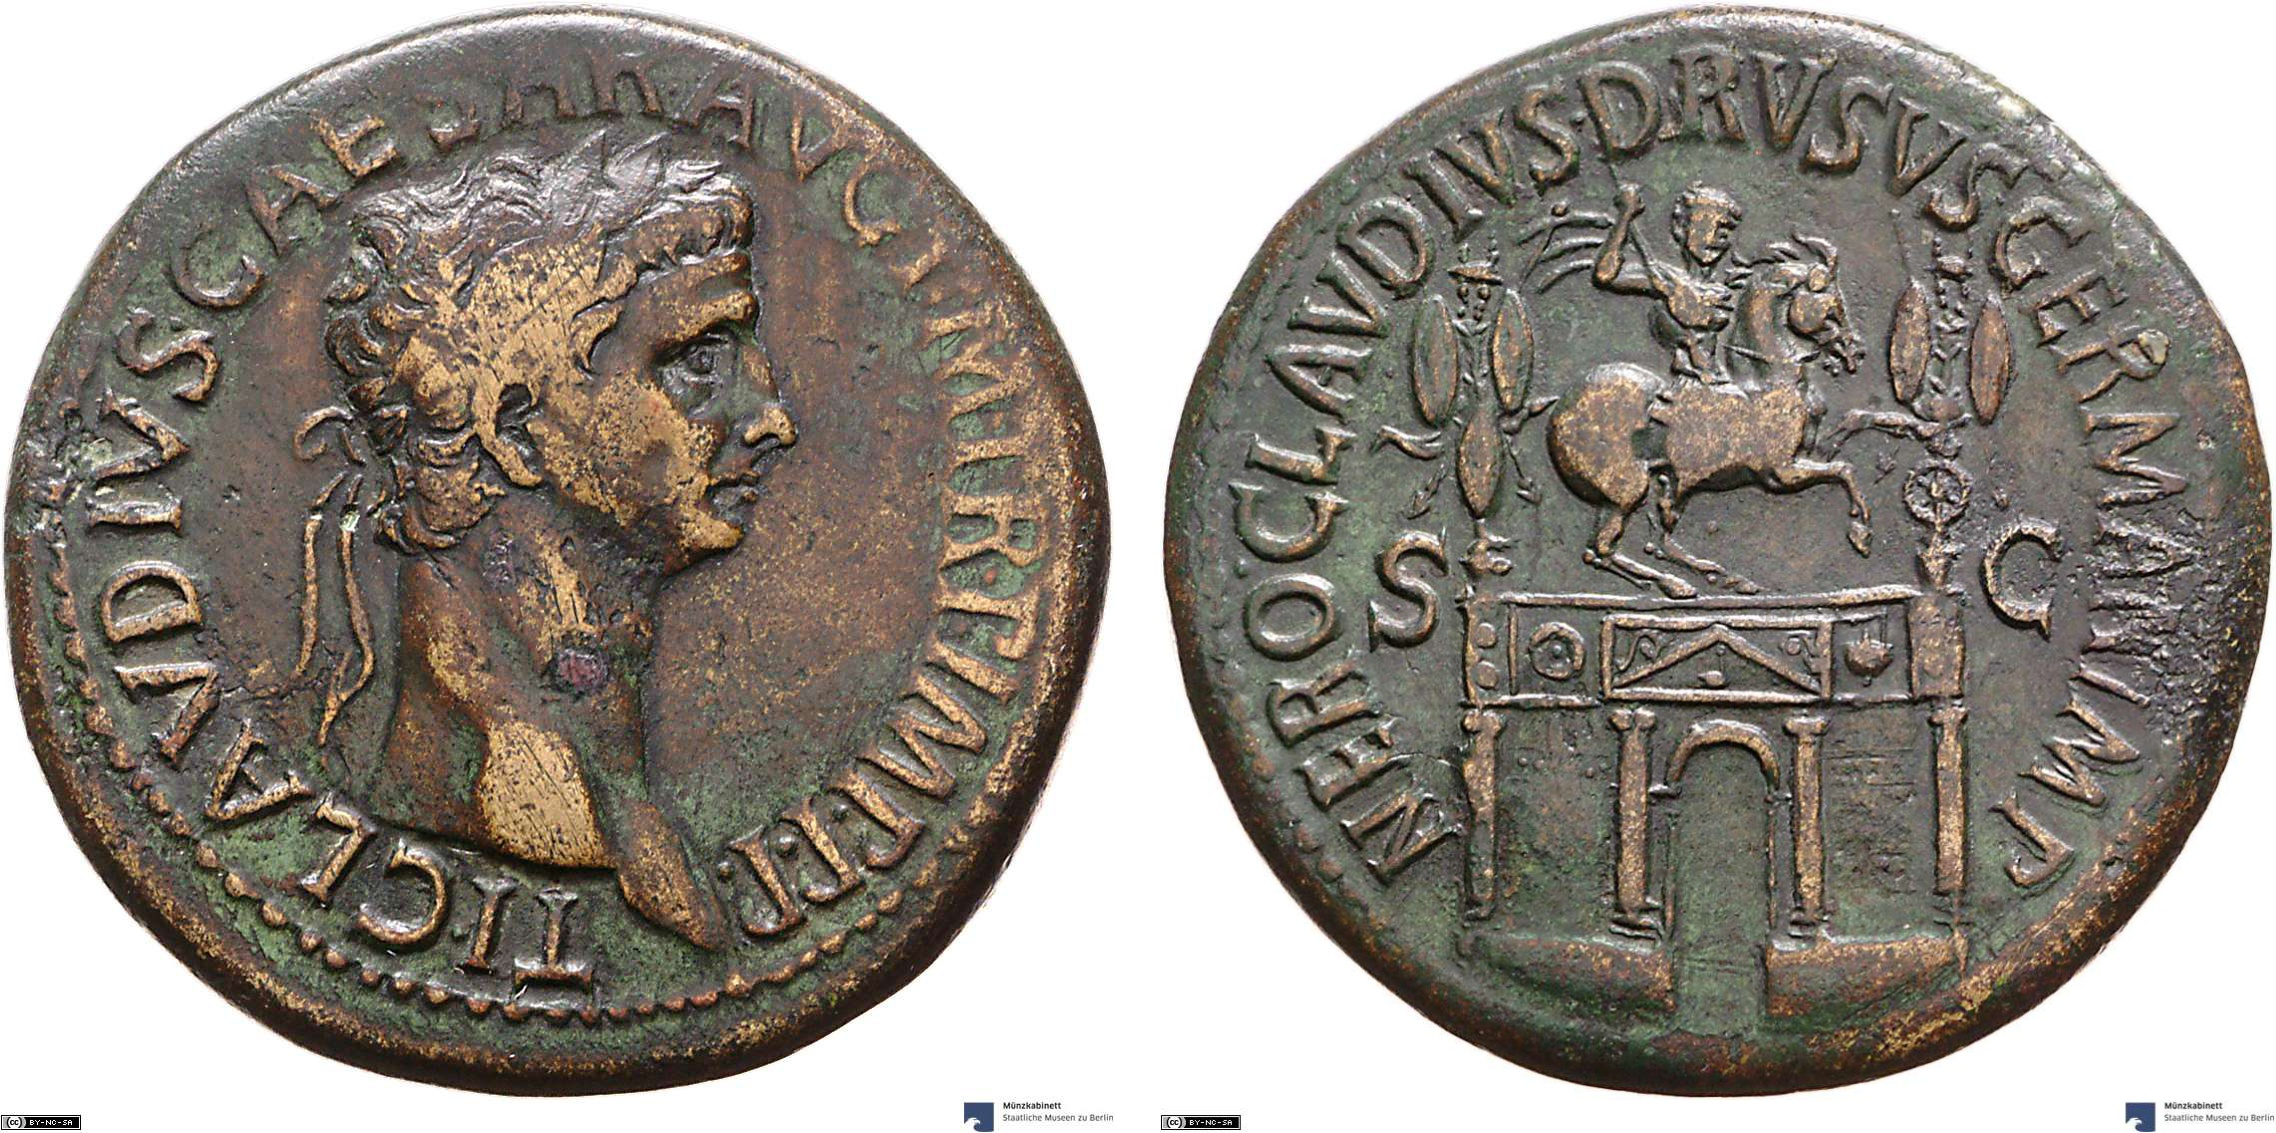 Sestertius showing an equestrian statue on reverse, minted in 42-43 AD under Claudius, Roman Empire